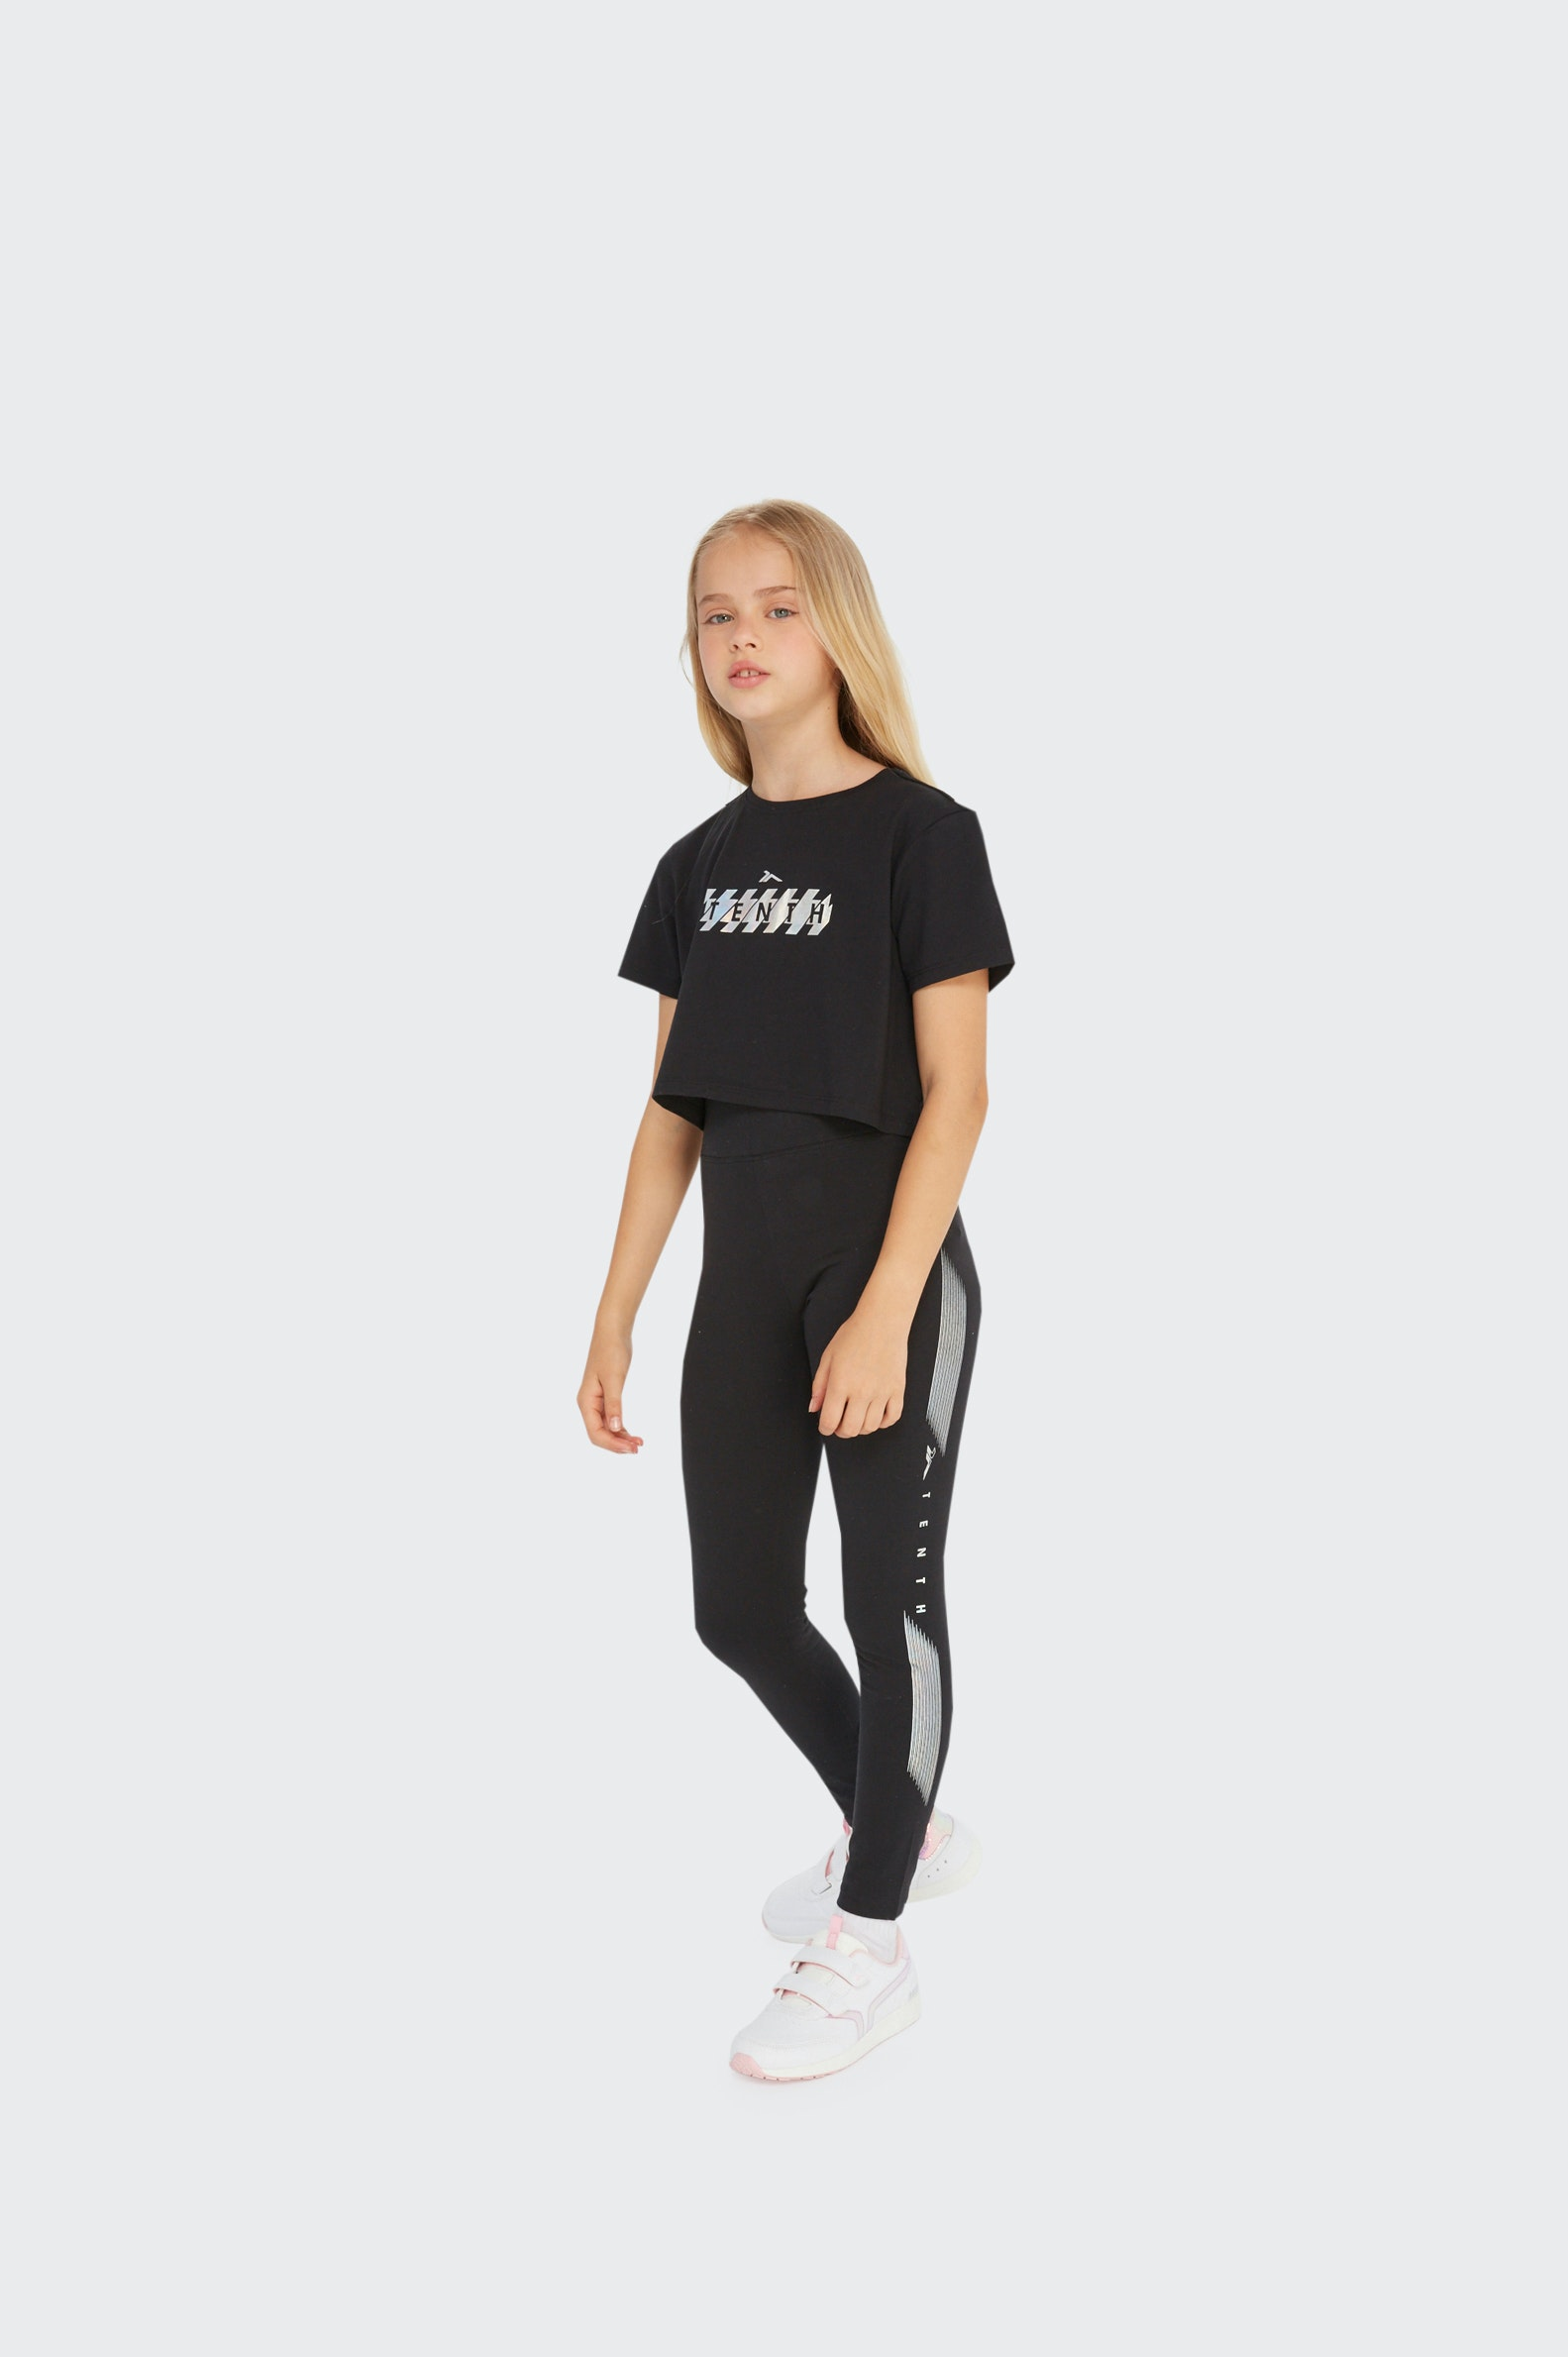 T-SHIRT FREESTYLE TENTH LOGO FILLE